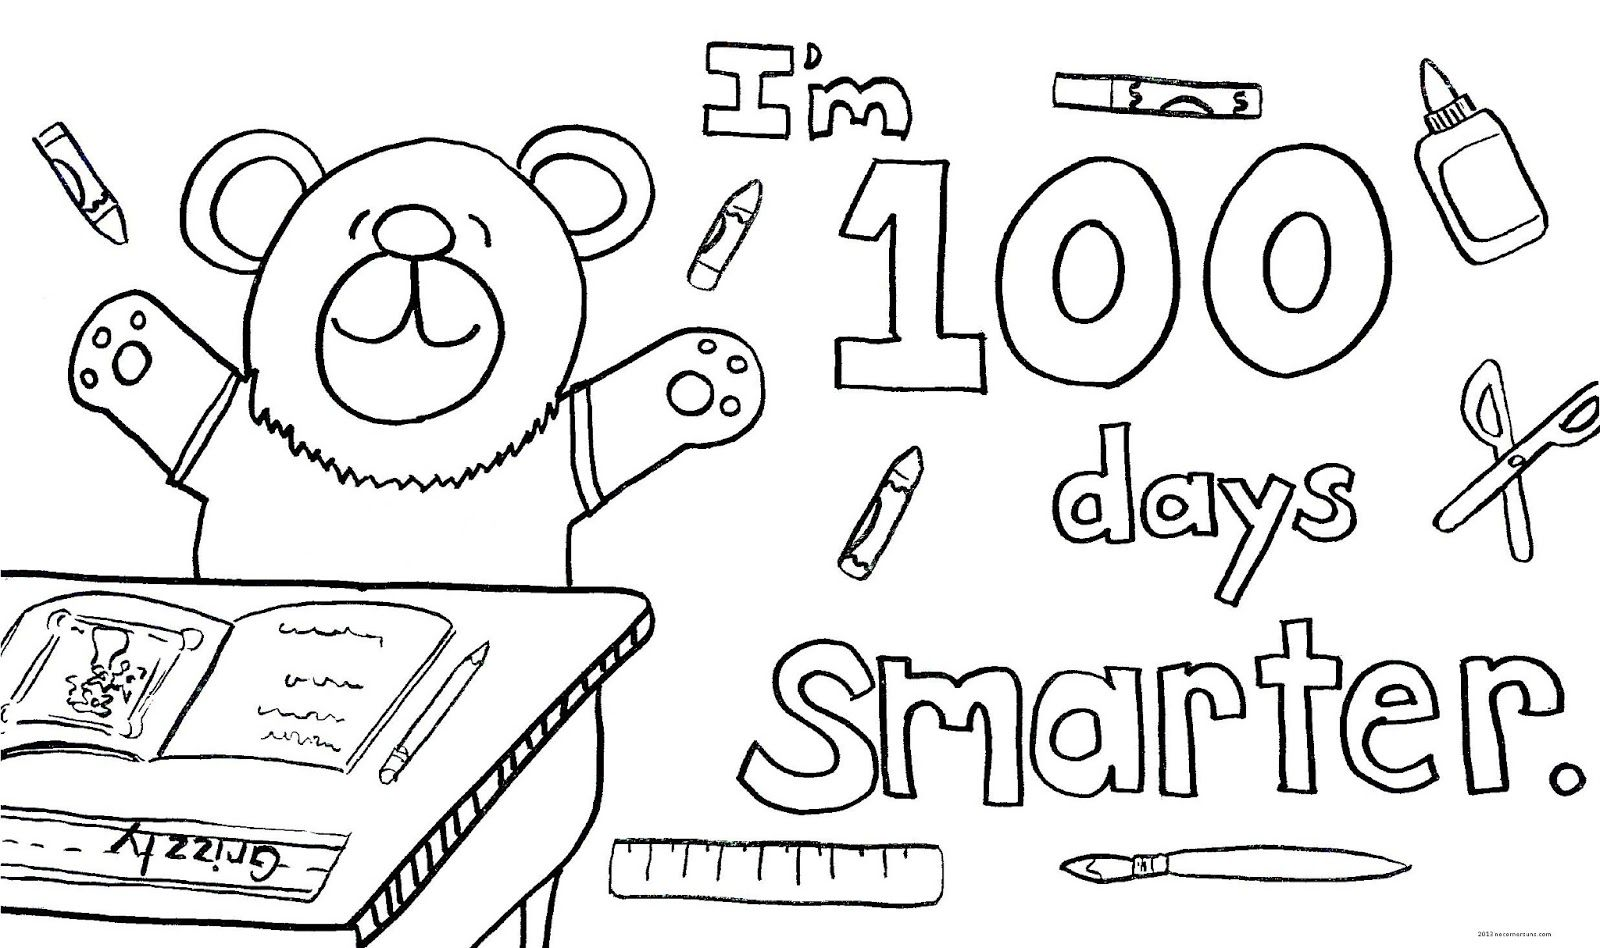 100th day of school coloring pages | Kingergarten